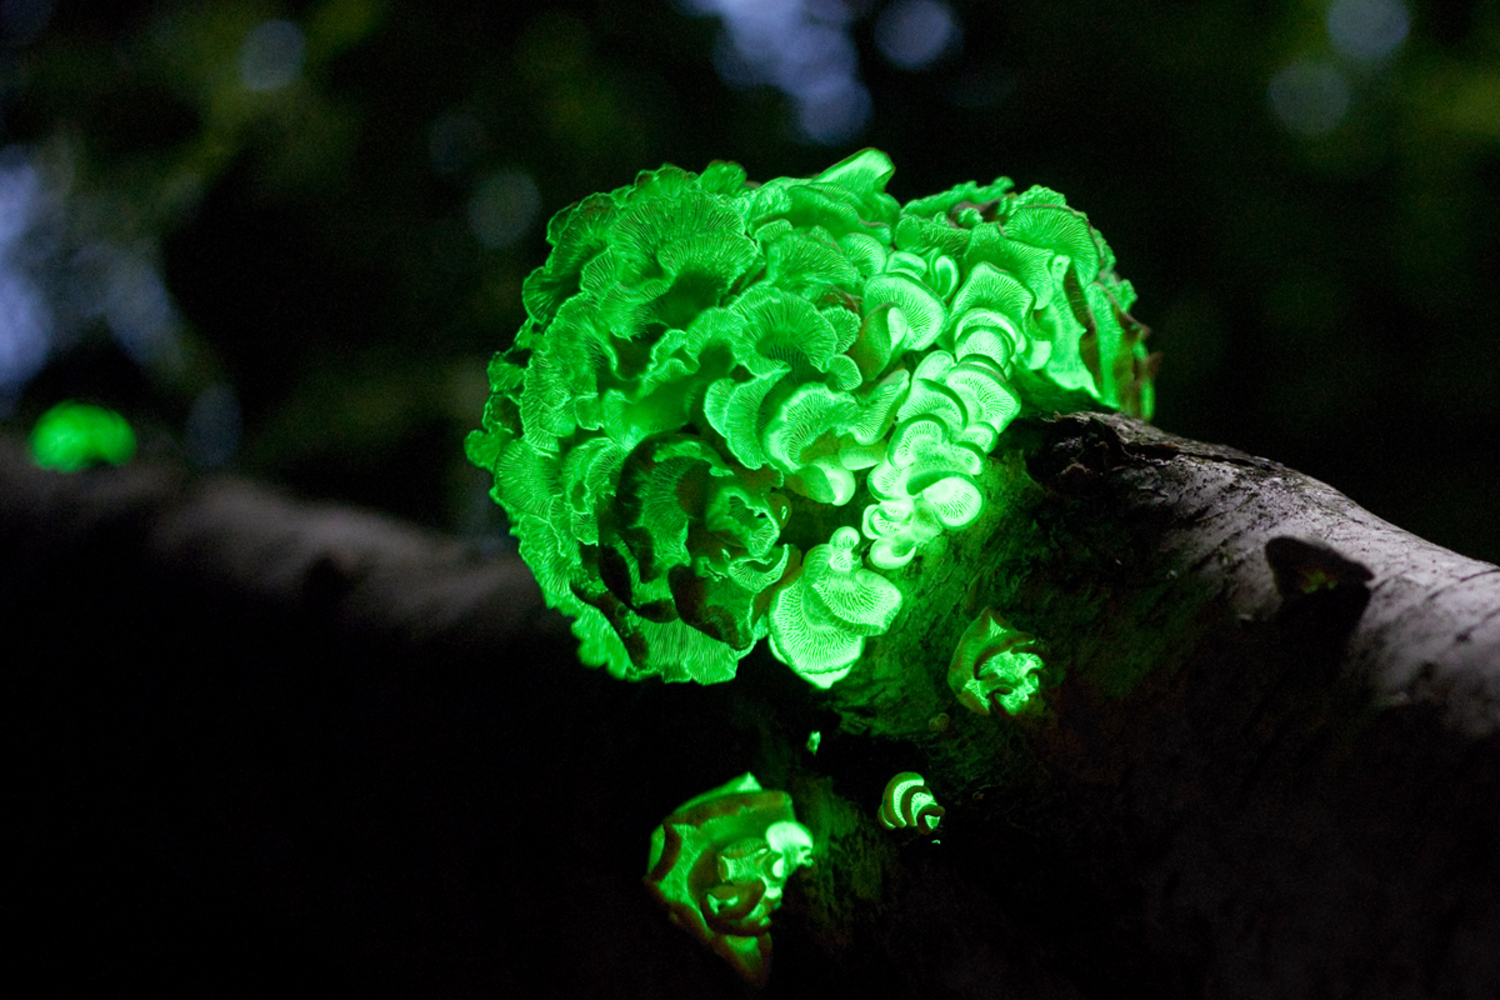 Startup Creating Avatar-like Glowing Plants Gets Yet More Funding